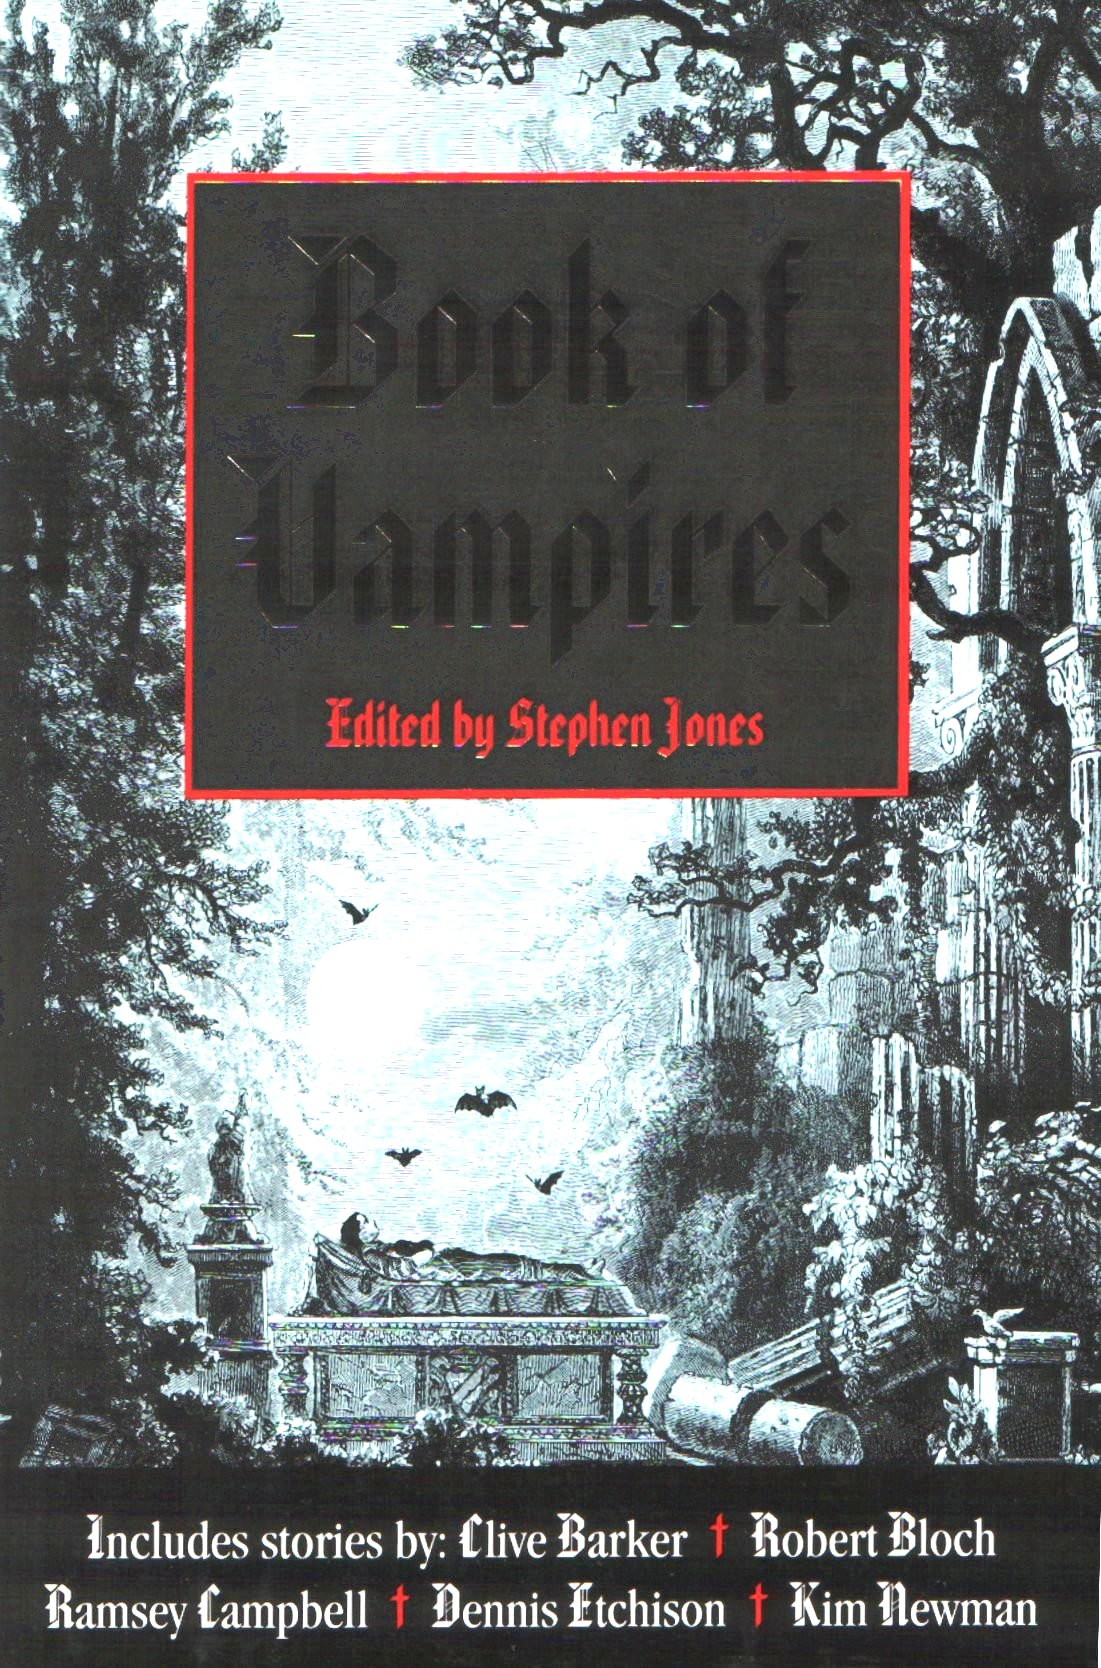 Book By Phyllis Vega Trish Macgregor: Stephen Jones: The Mammoth Book Of Vampires (1992